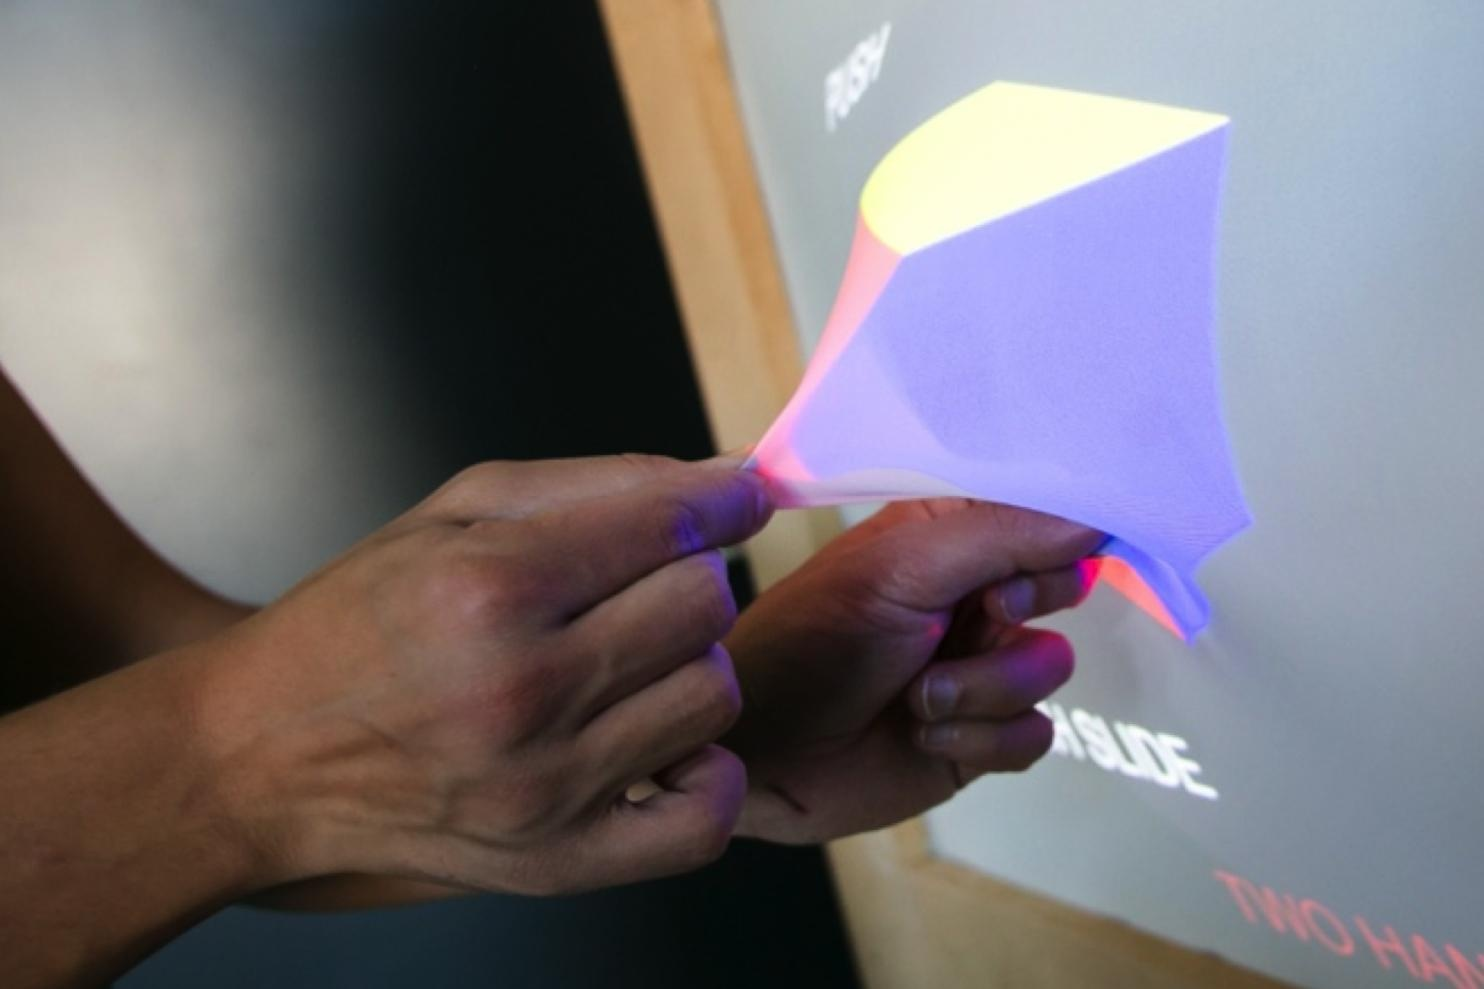 GHOST ultrasound haptic shape-changing displays